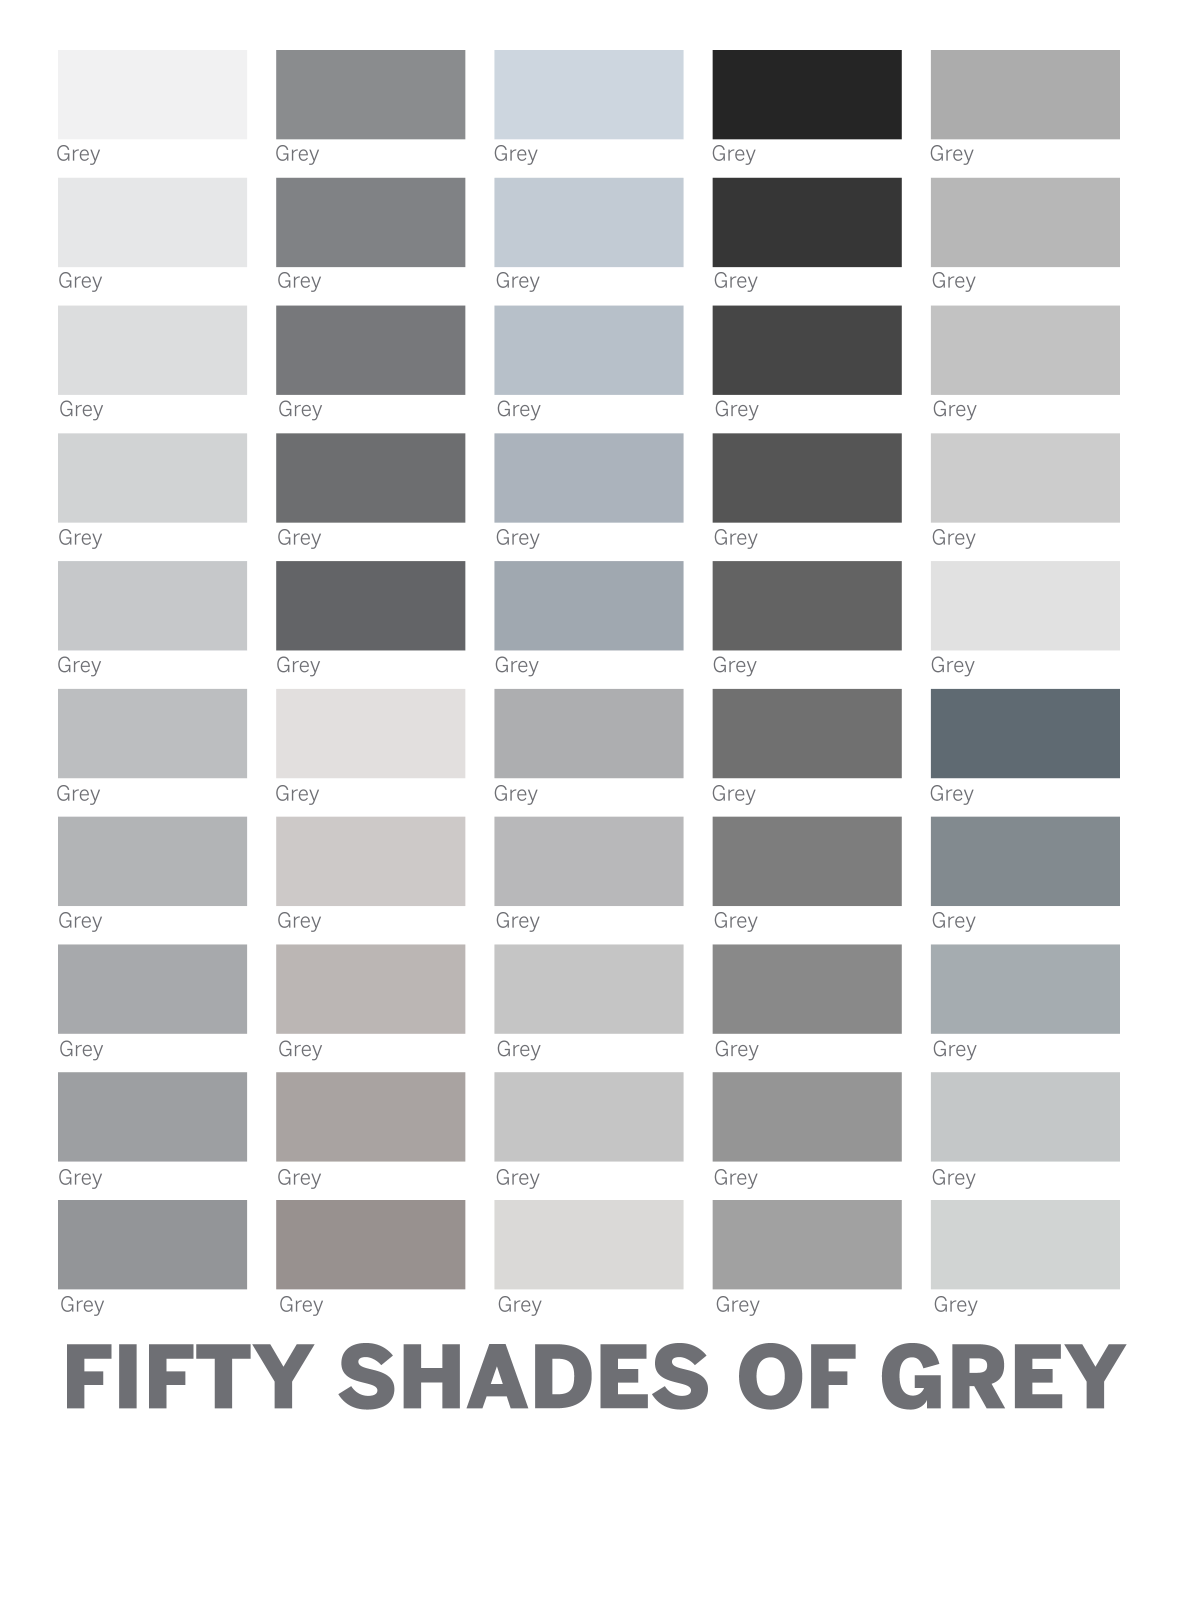 Gray Shades 50 shades of gray – chro-nick-les